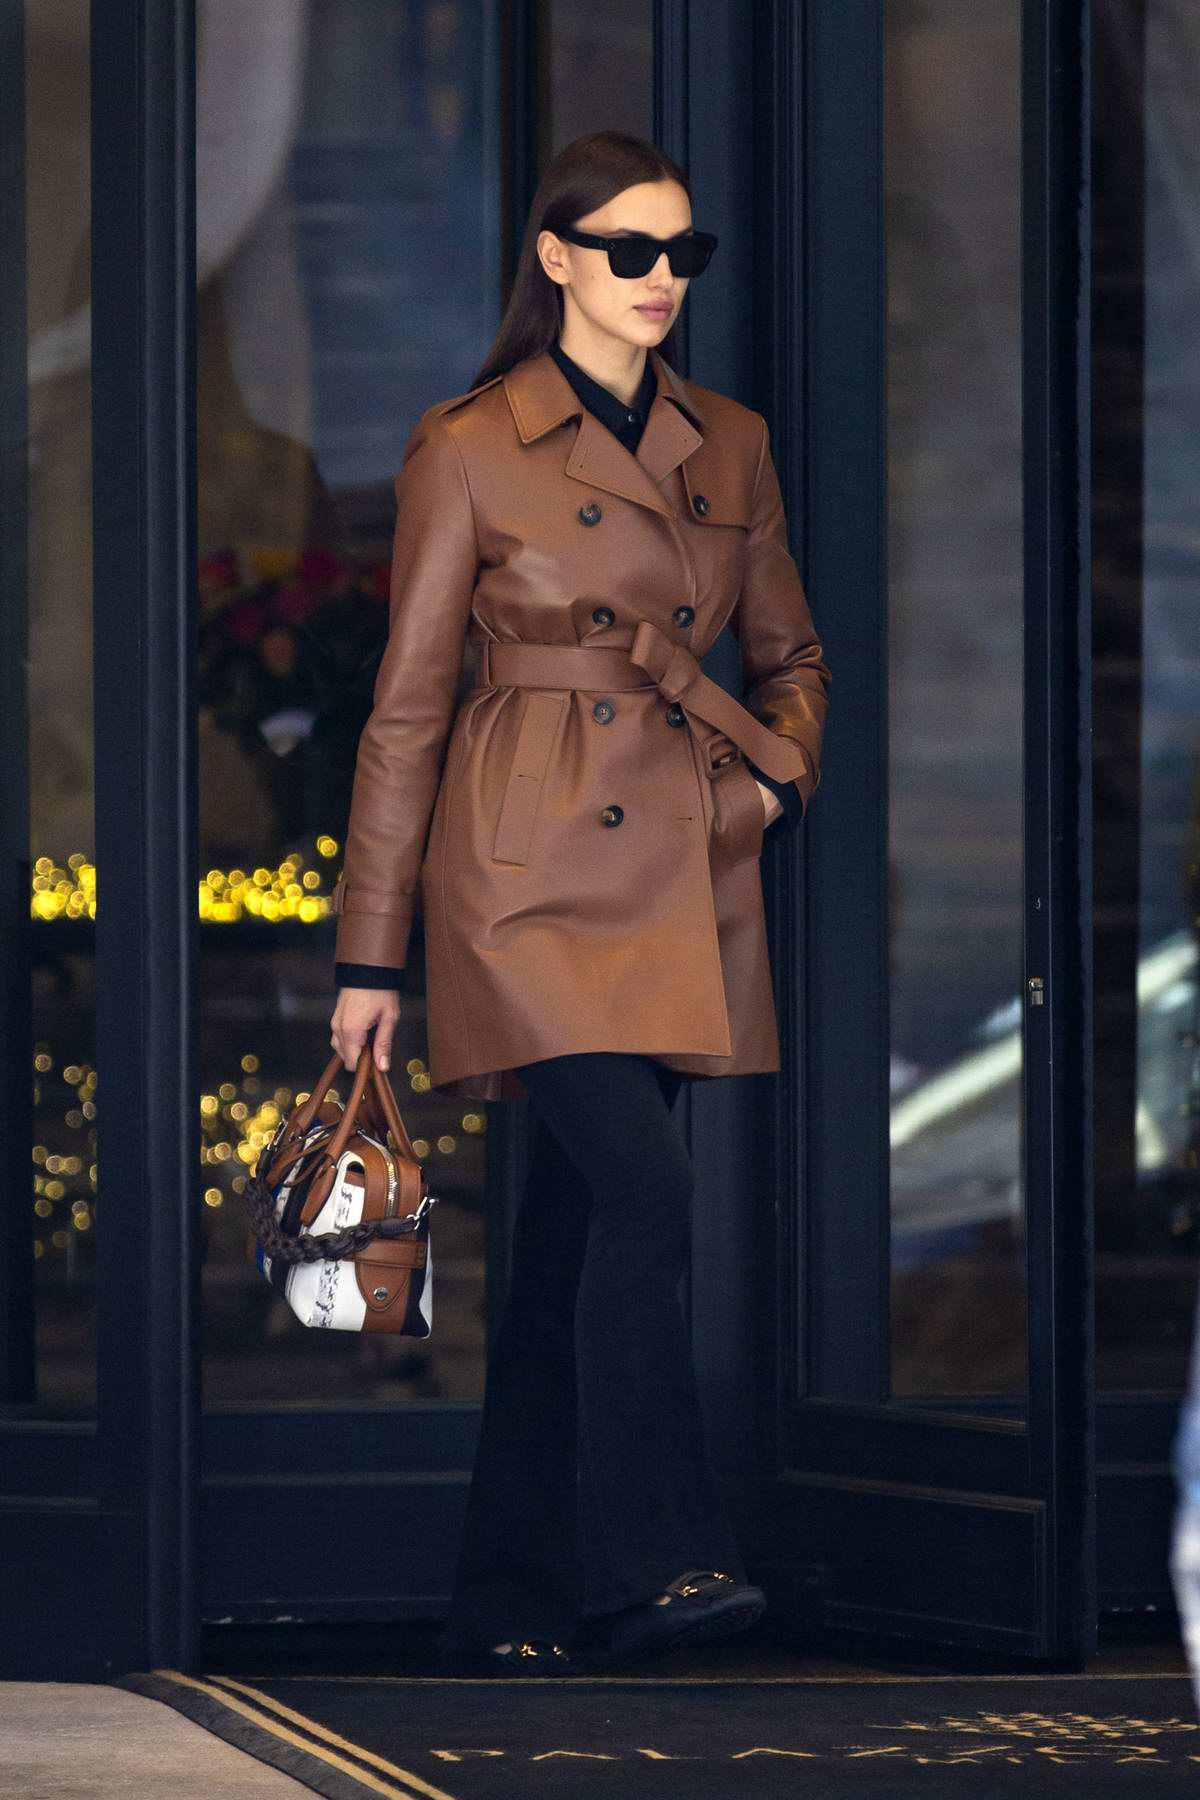 Irina Shayk looks chic in a brown leather jacket while shooting a commercial for Tod's in Milan, Italy